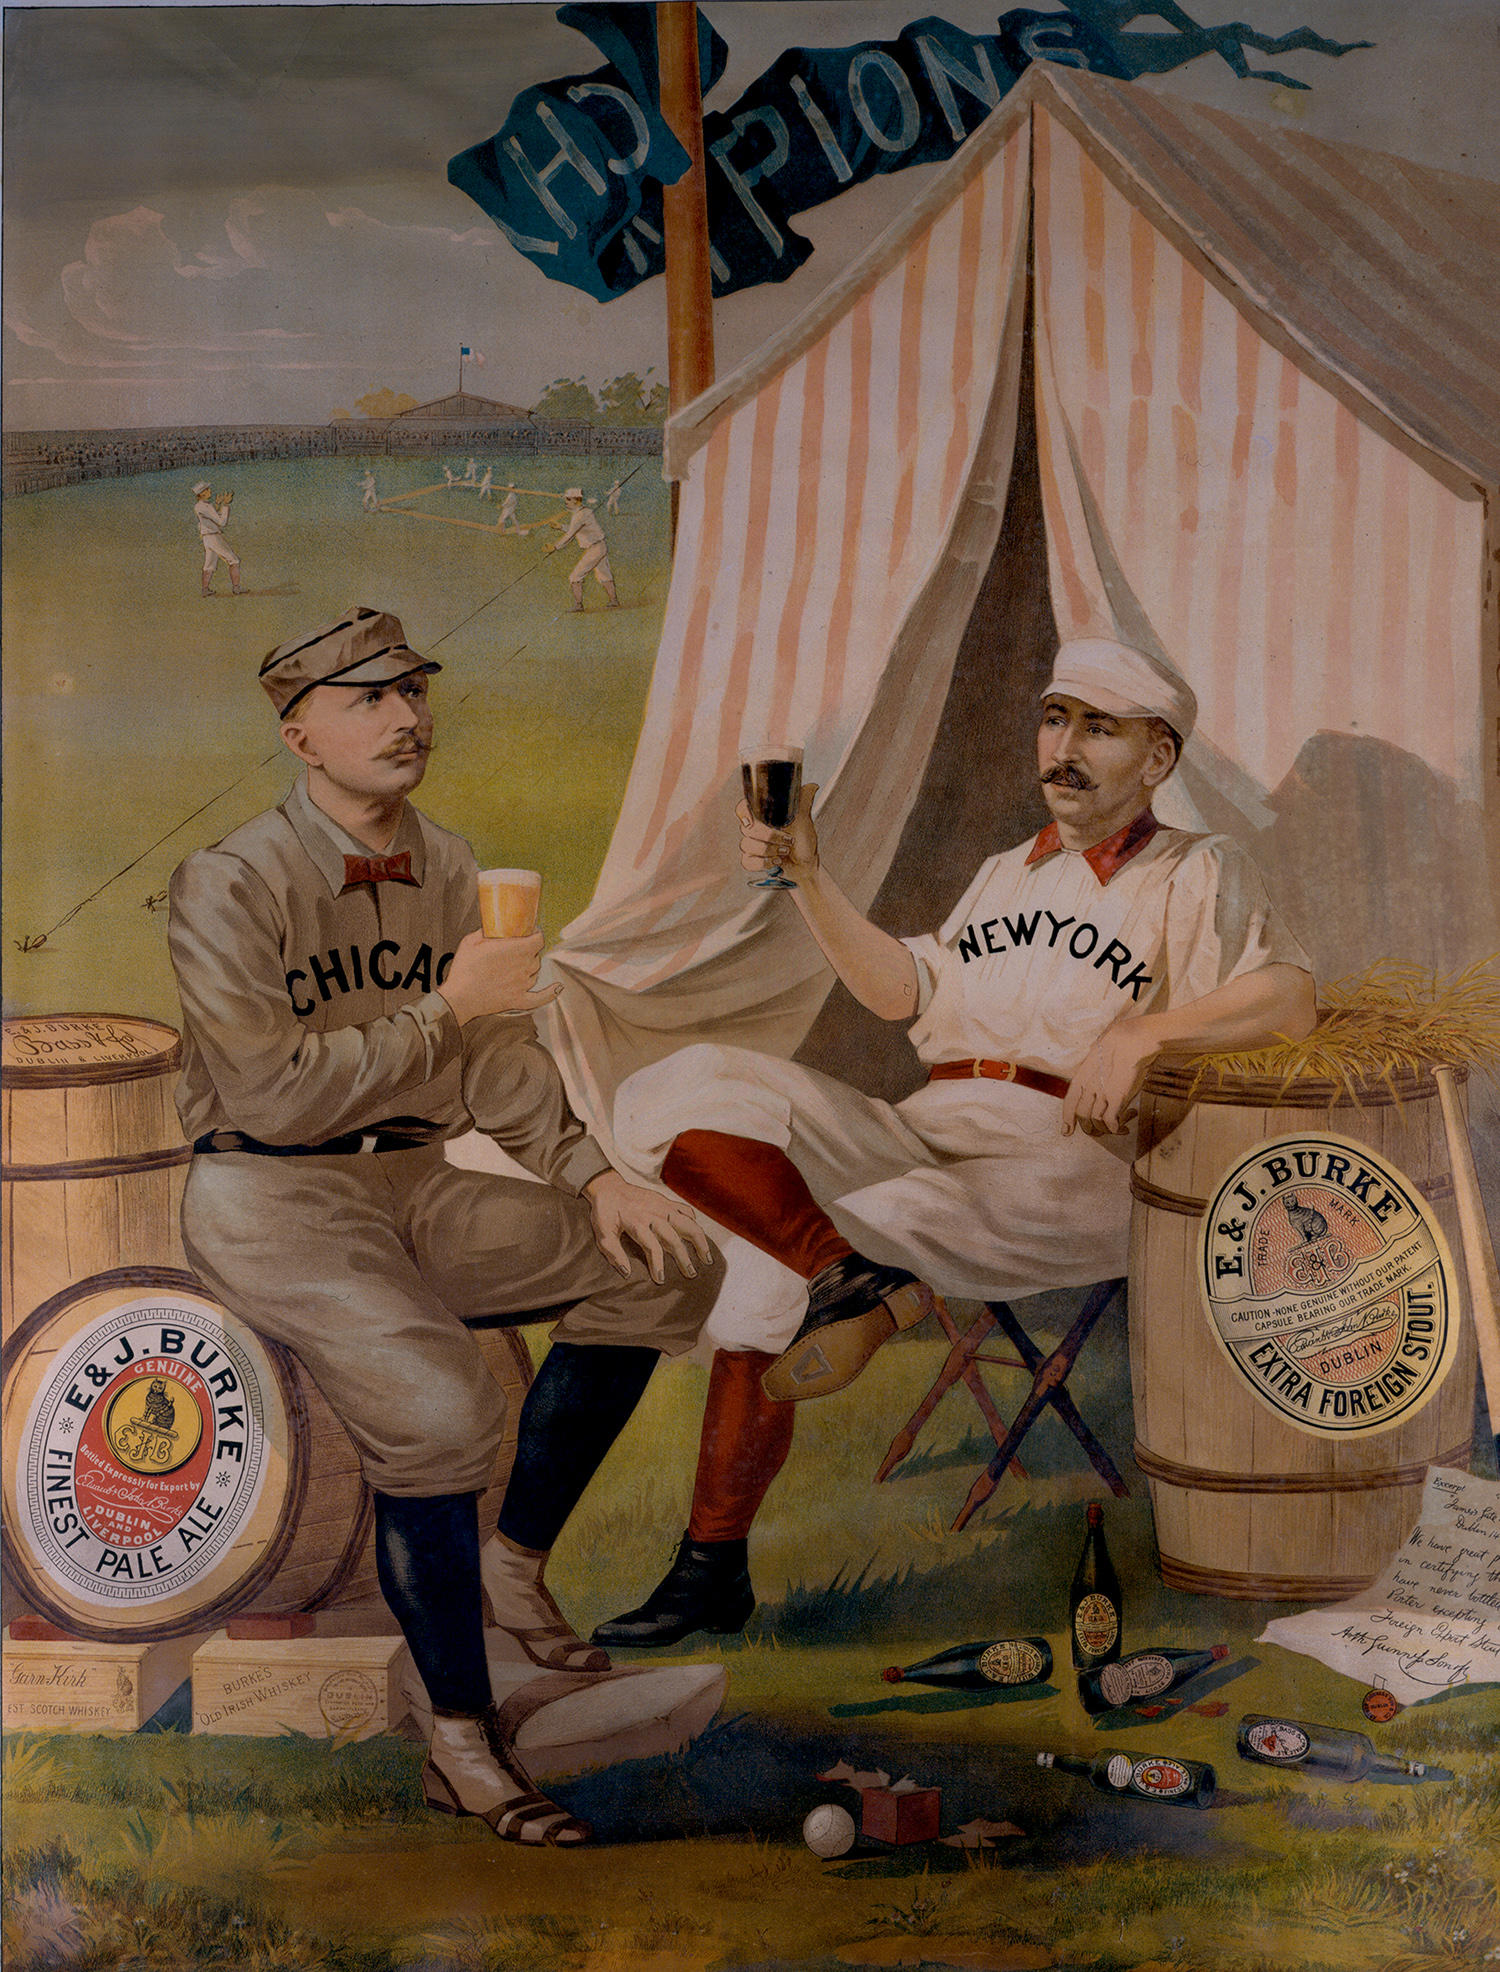 One of the first known advertisements featuring a baseball player is this 1889 lithograph depicting Hall of Famer Cap Anson (left) and New York's Buck Ewing endorsing beer from E. & J. Burke. (National Baseball Hall of Fame)